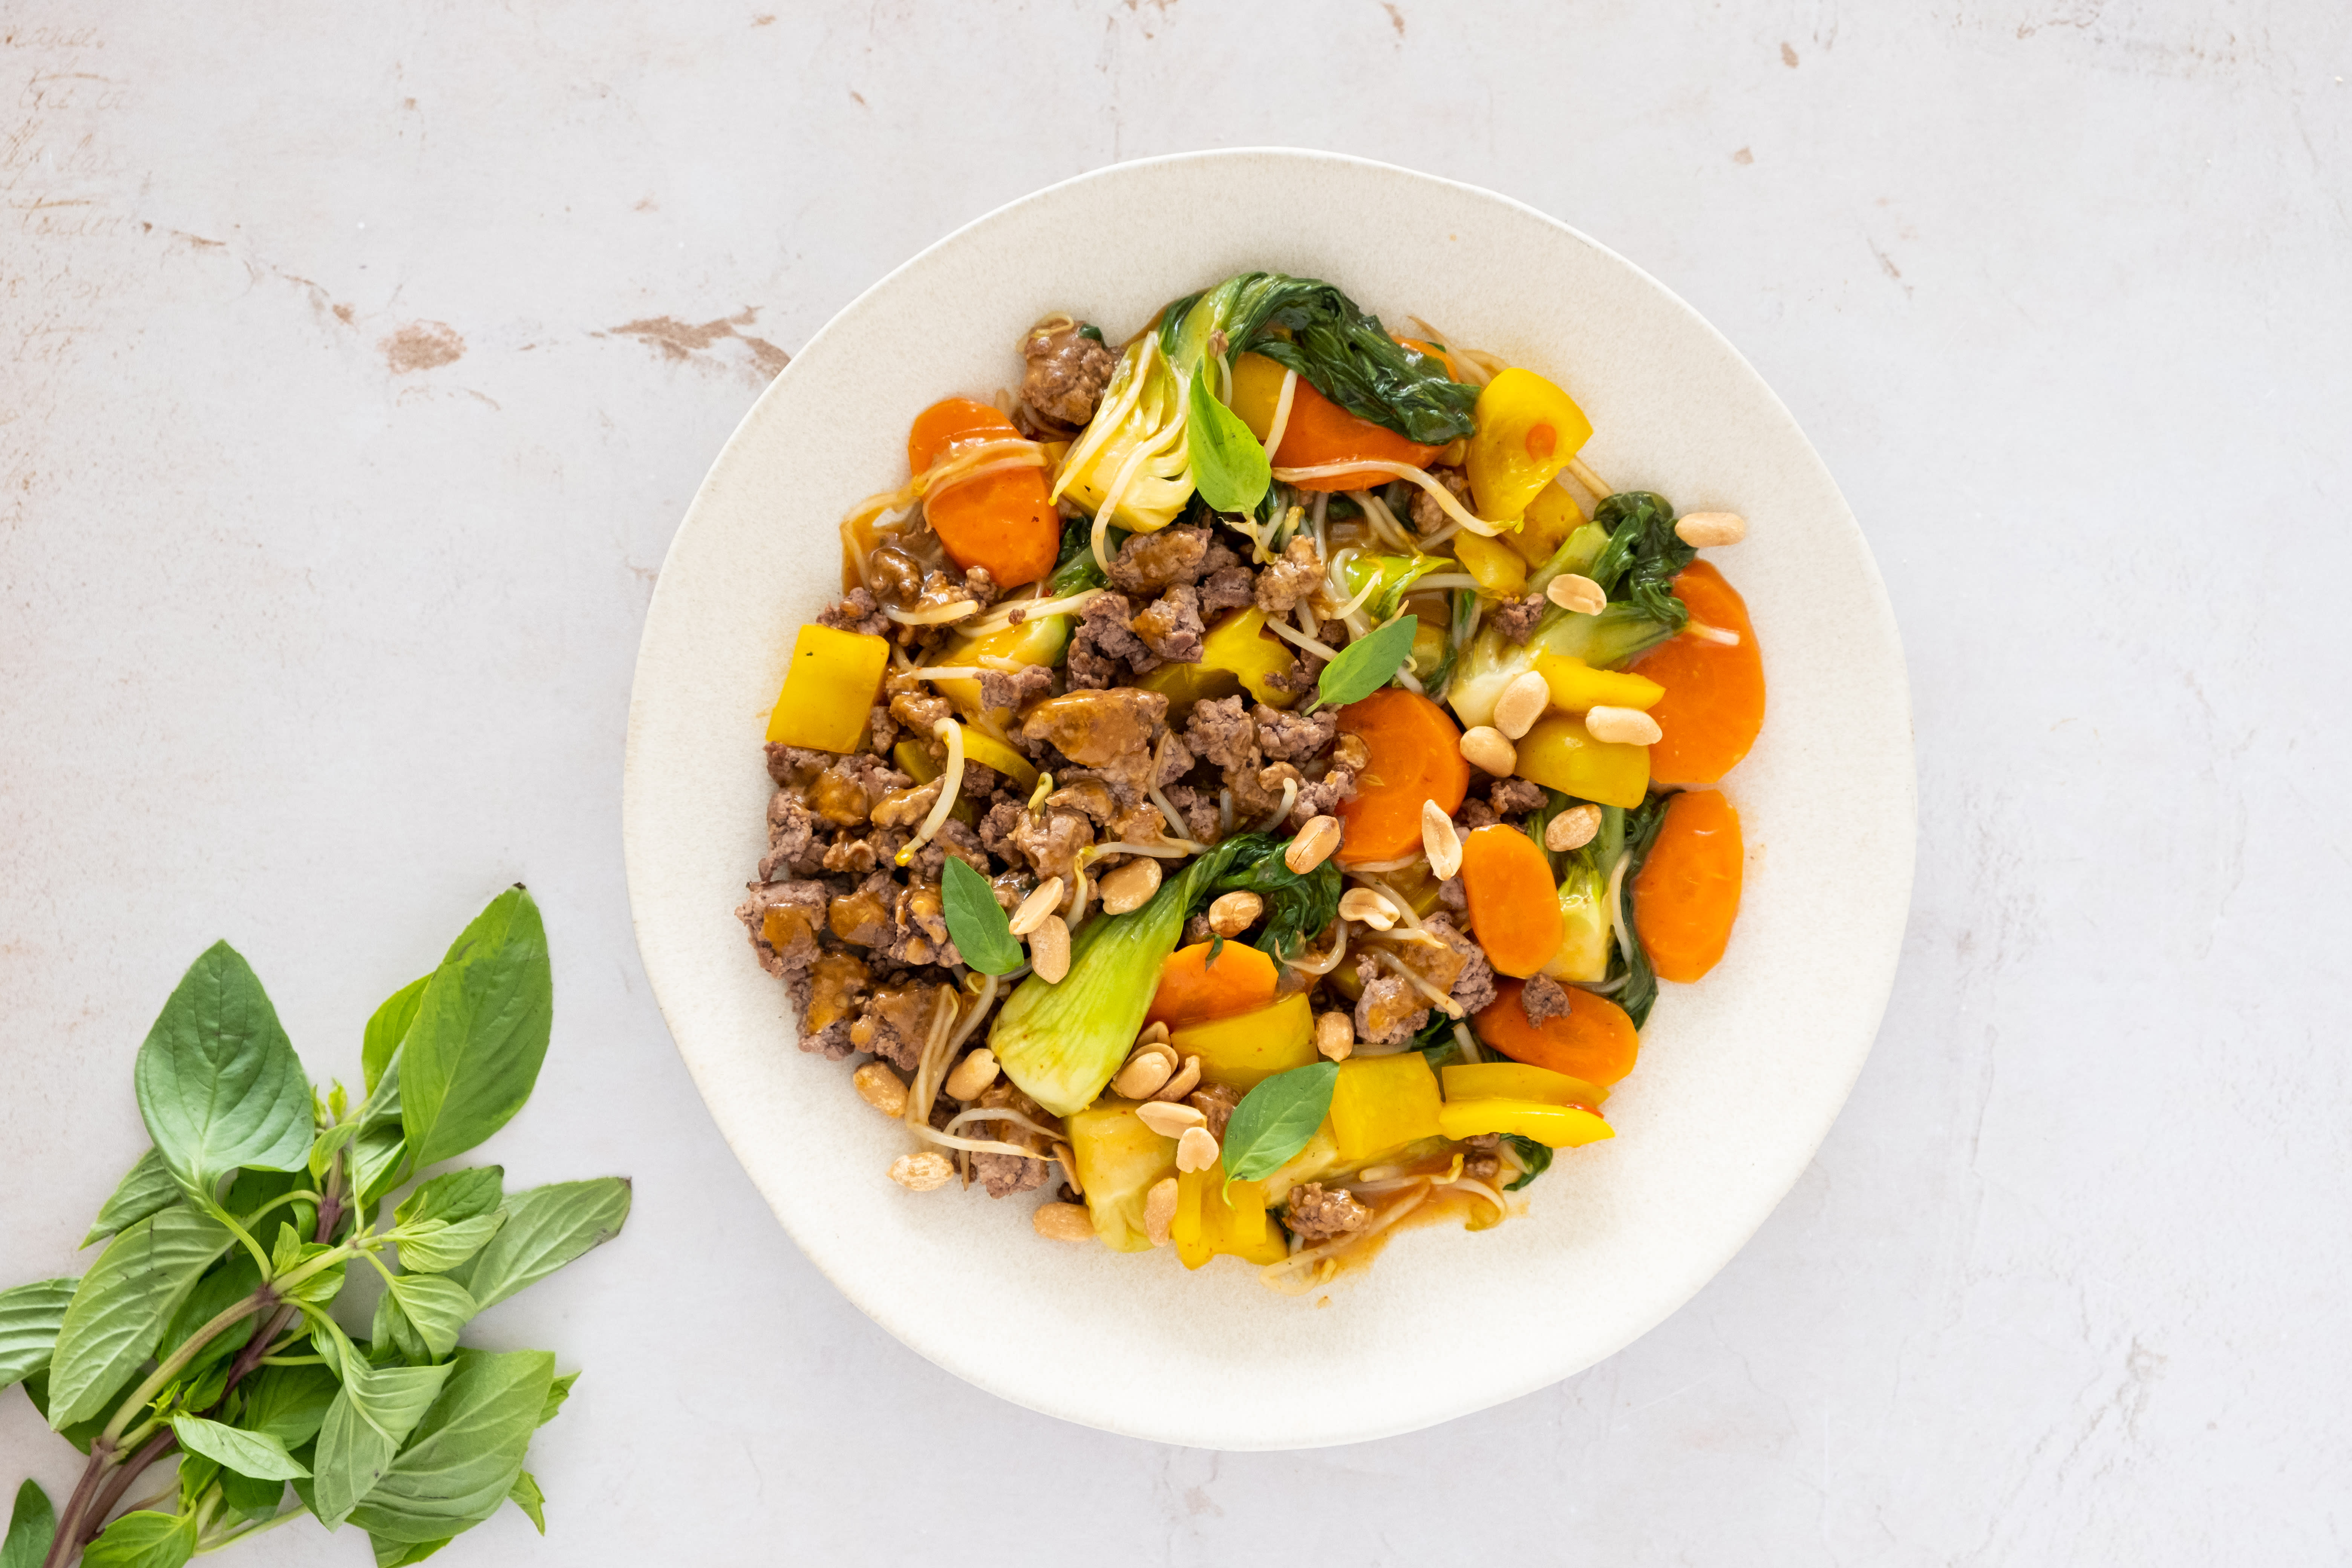 Thai Beef Stir-fry with Pak Choi, Peppers and Peanuts